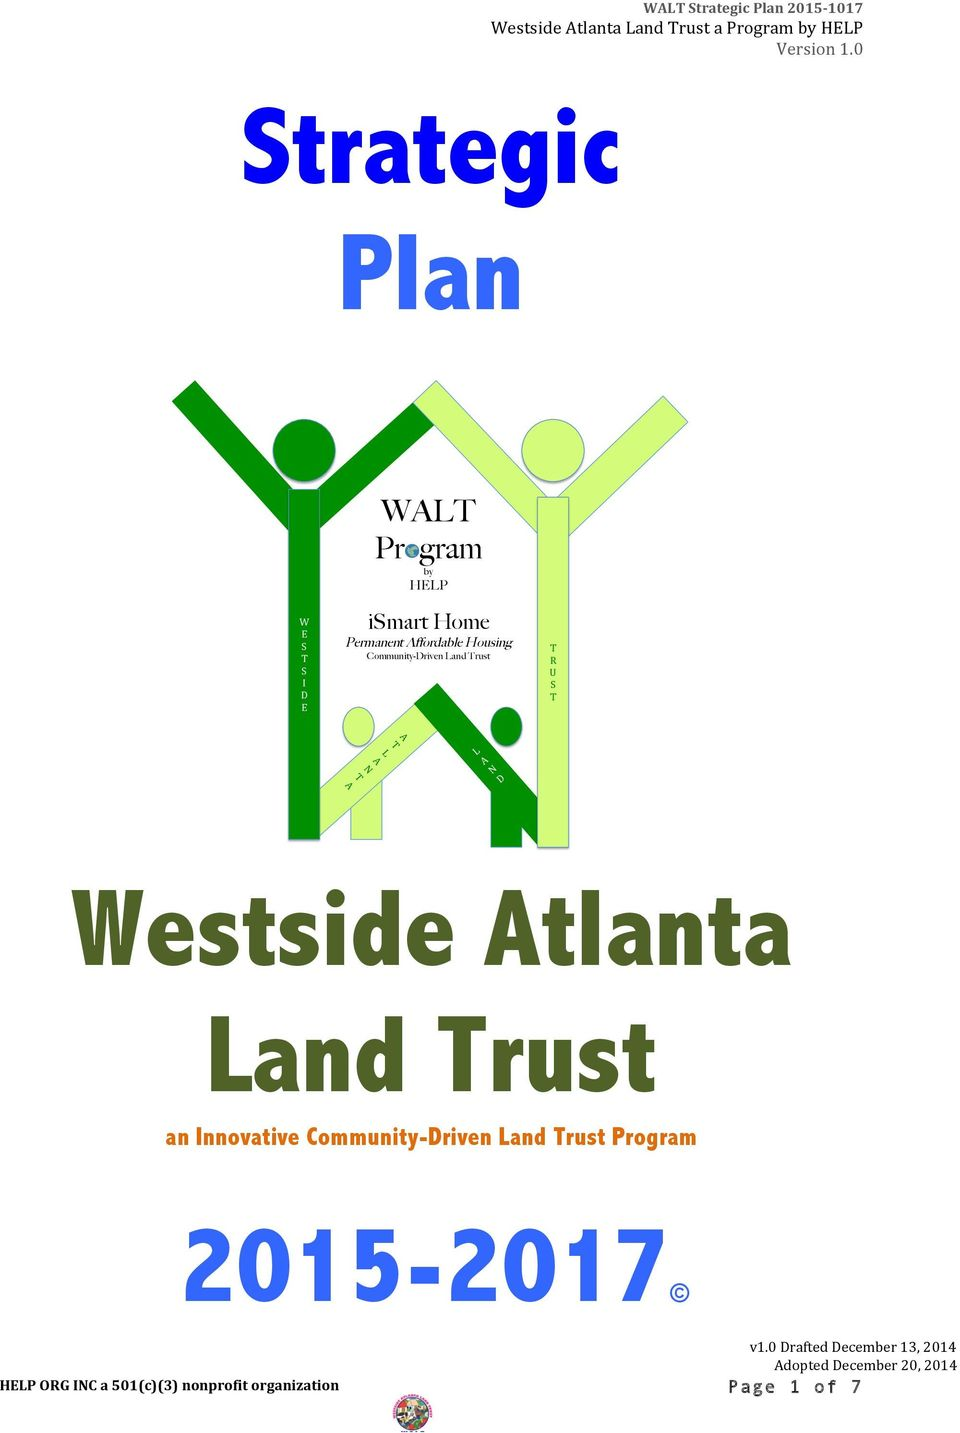 WALT Pr gram by HELP ismart Home Permanent Affordable Housing Community-Driven Land